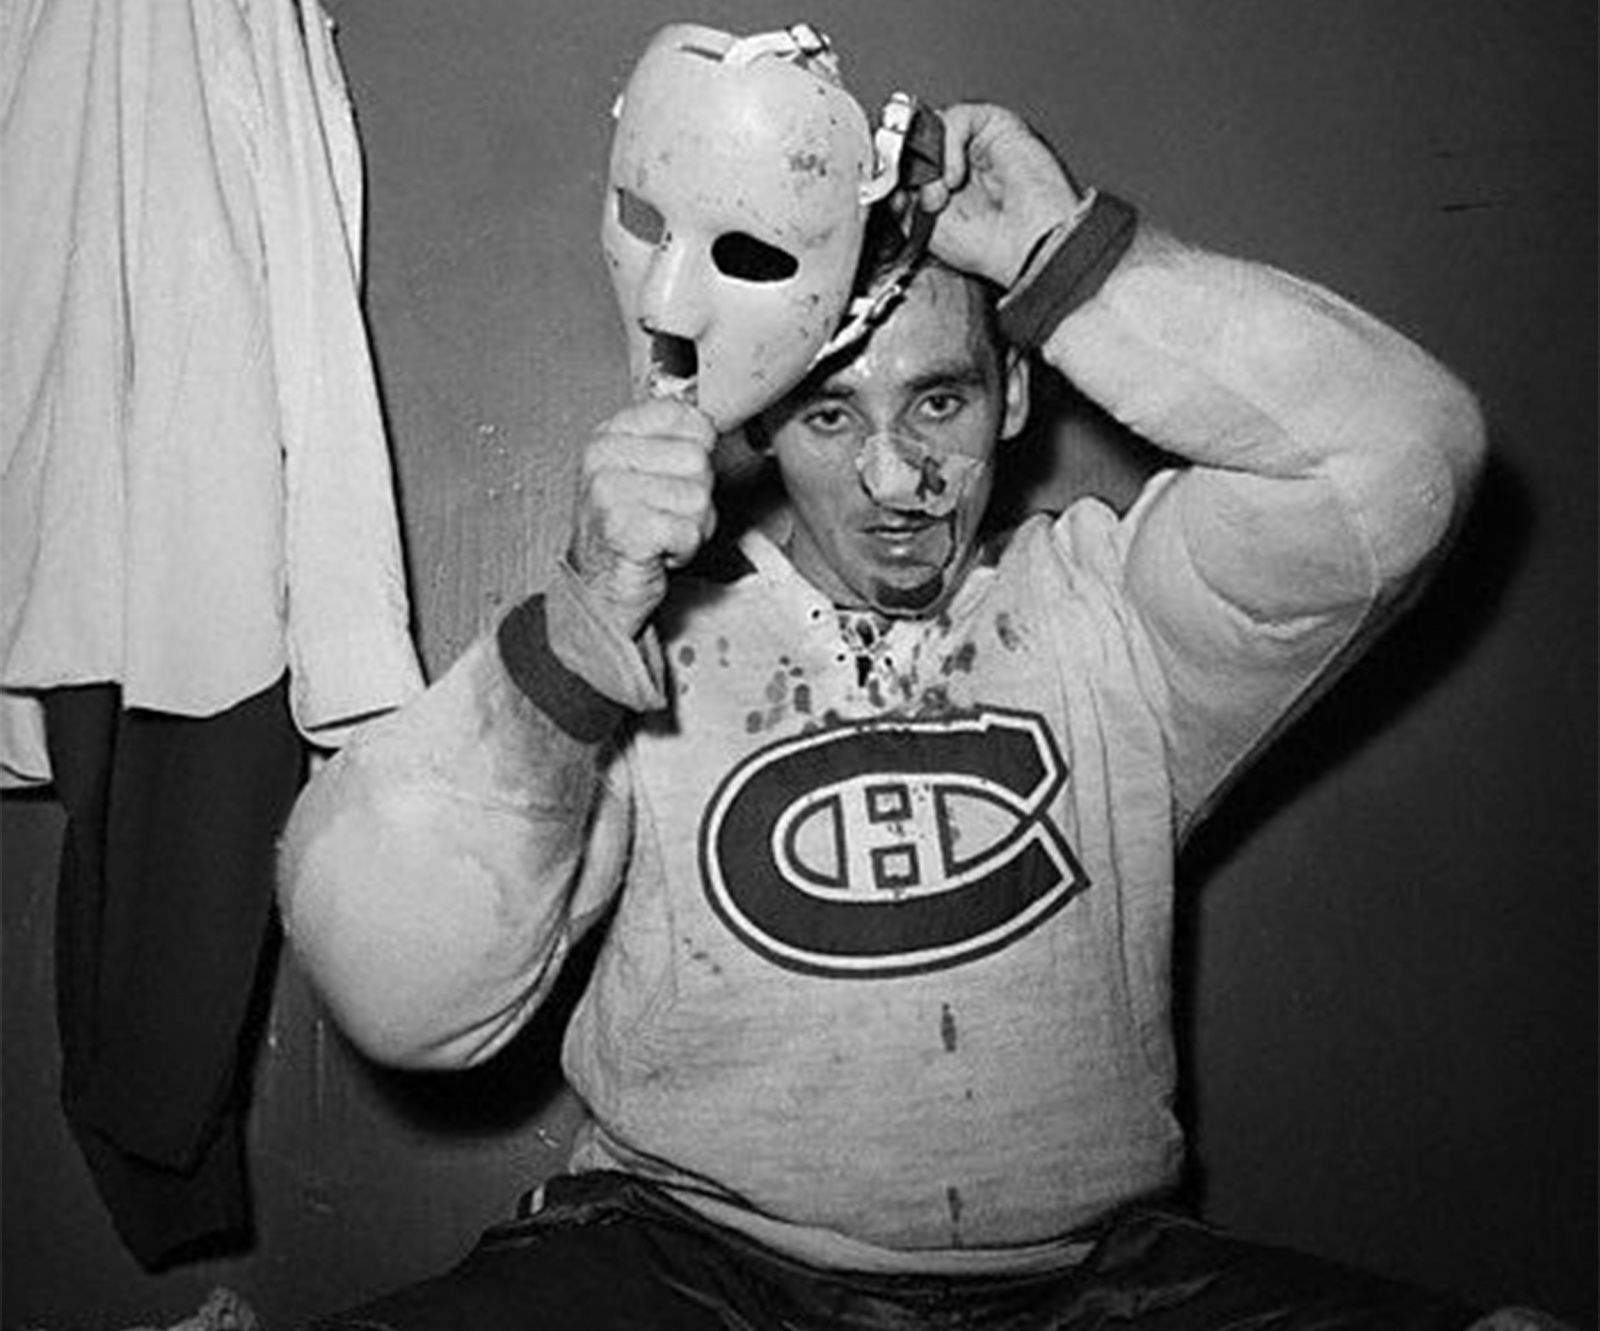 Jacques Plante made history in 1959 when refused to play after a facial injury without a protective mask.